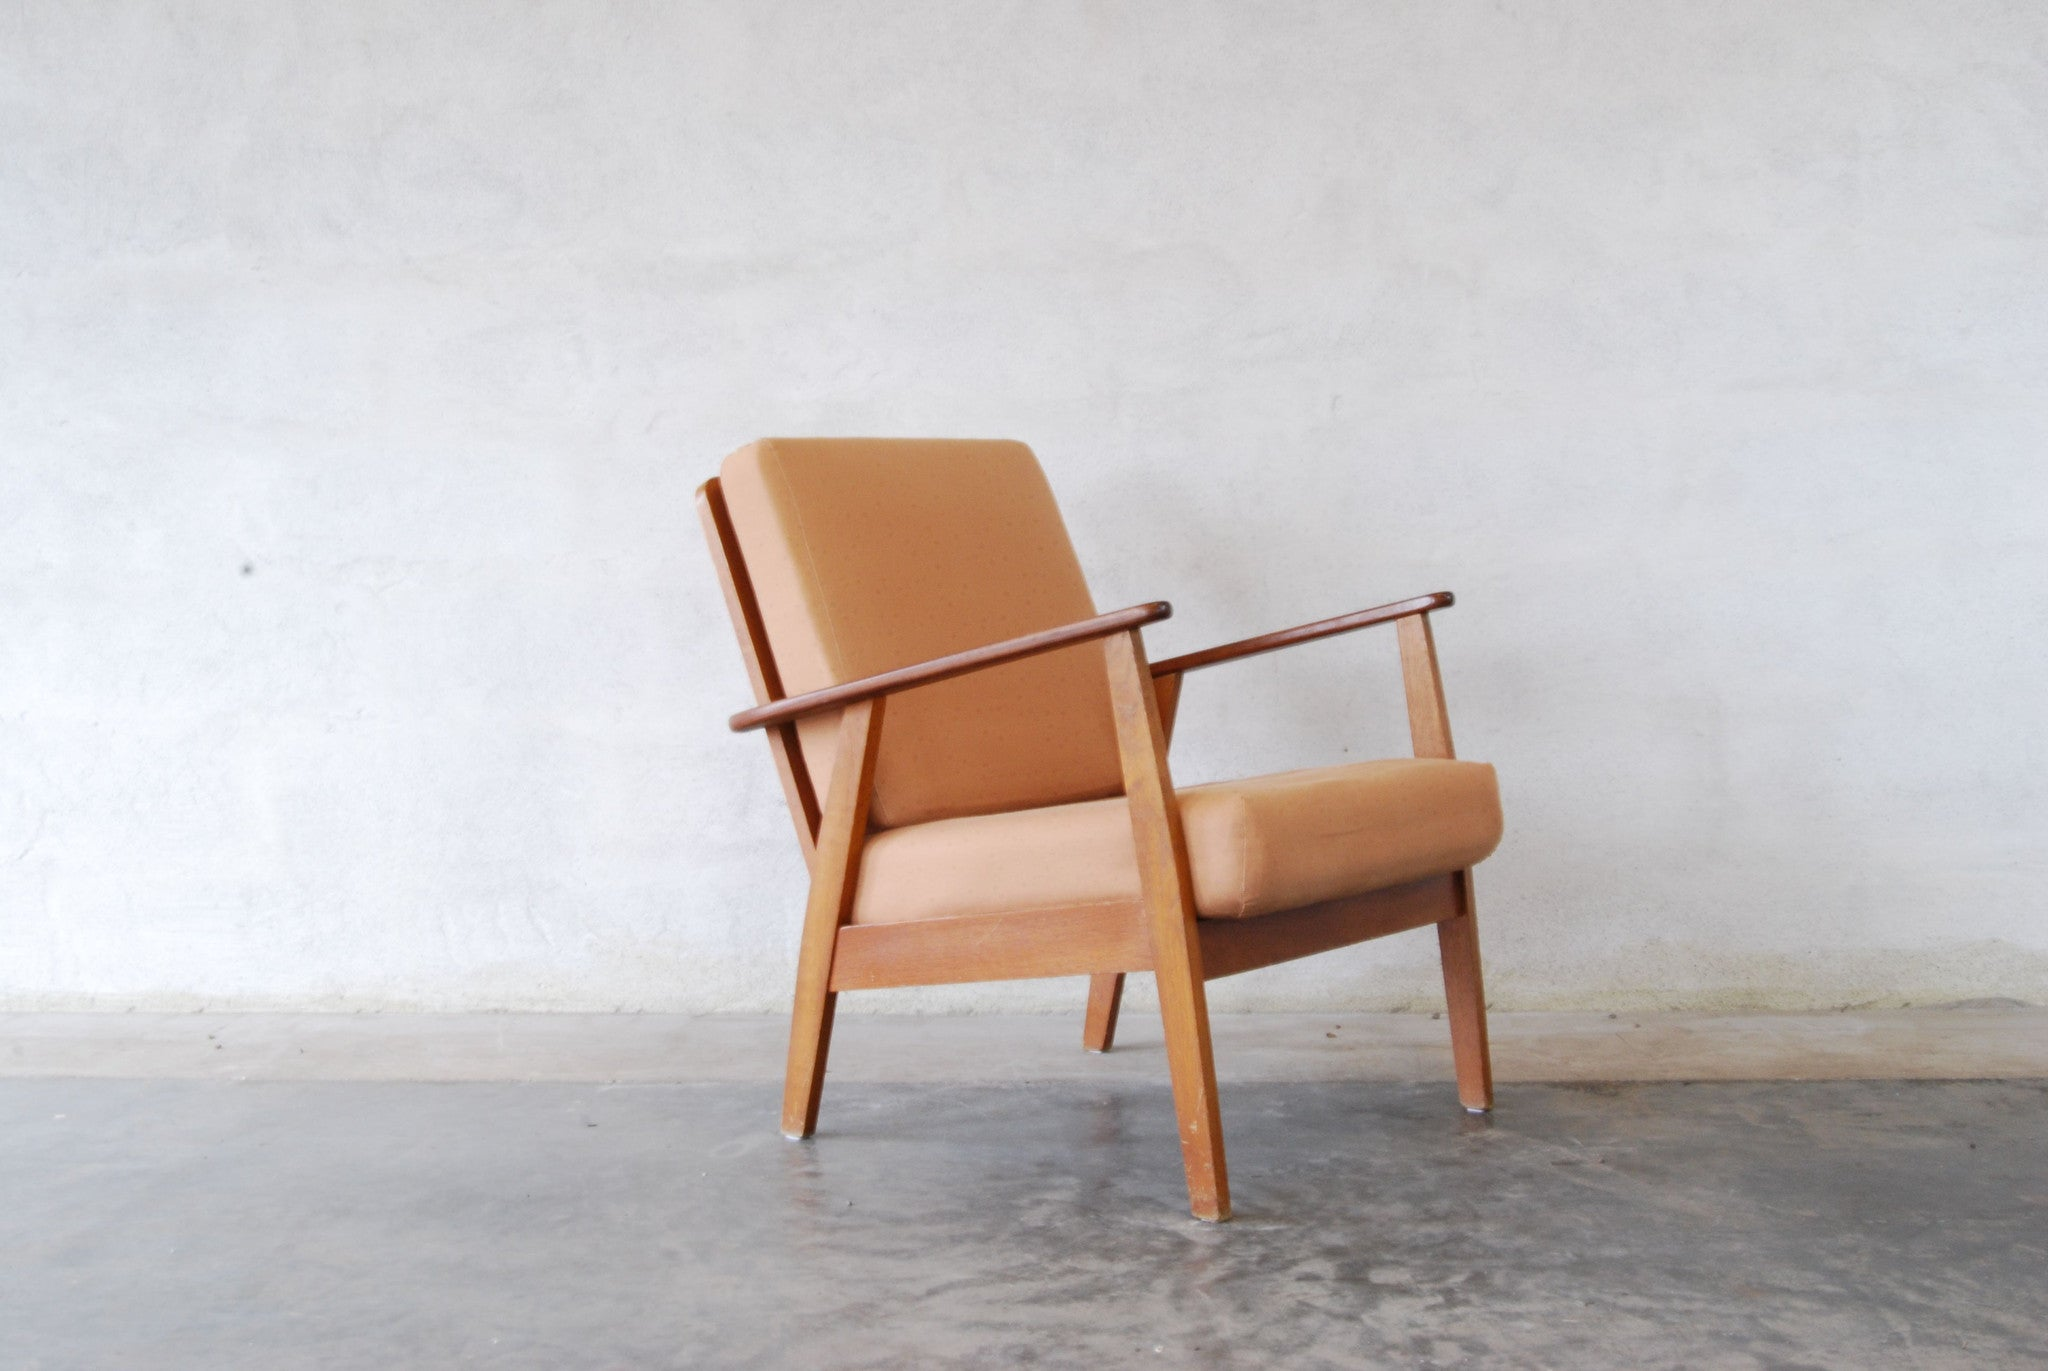 Chase & Sorensen Teak/beech framed lounge chair no. 1